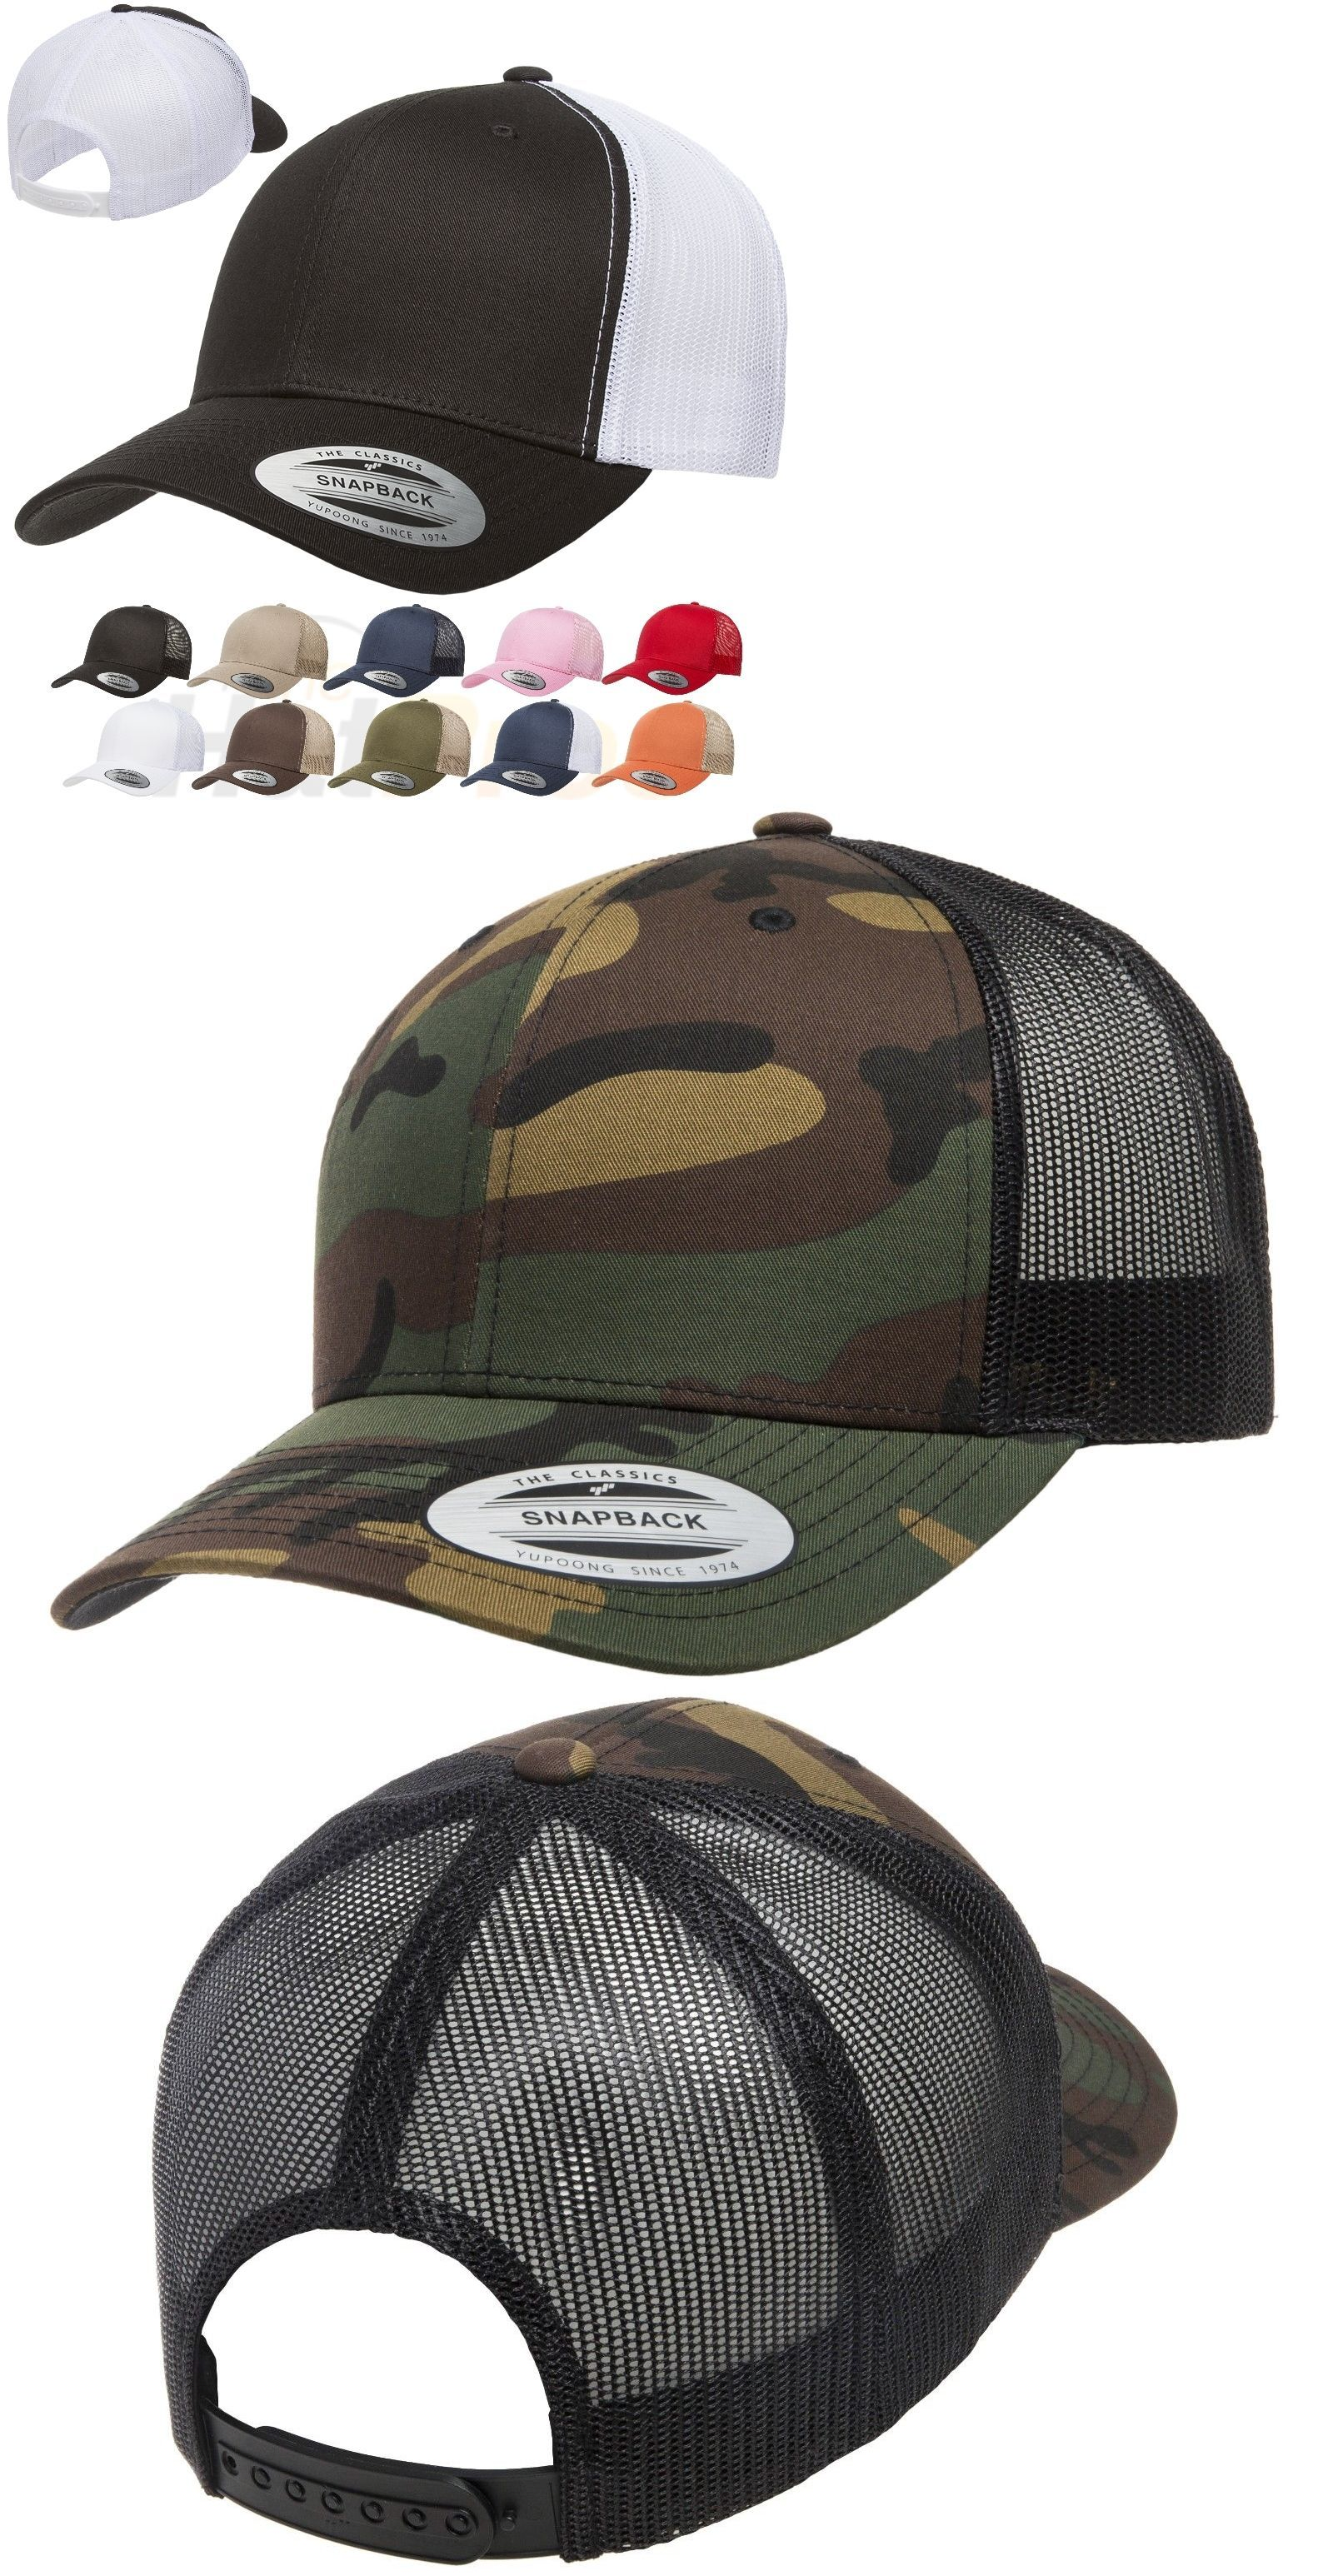 c5485ab74ccbe Hats 52365  Yupoong Classic Blank Retro Cotton Trucker Mesh Cap Snapback Hat  6606 And 6606T -  BUY IT NOW ONLY   21.8 on  eBay  yupoong  classic  blank  ...